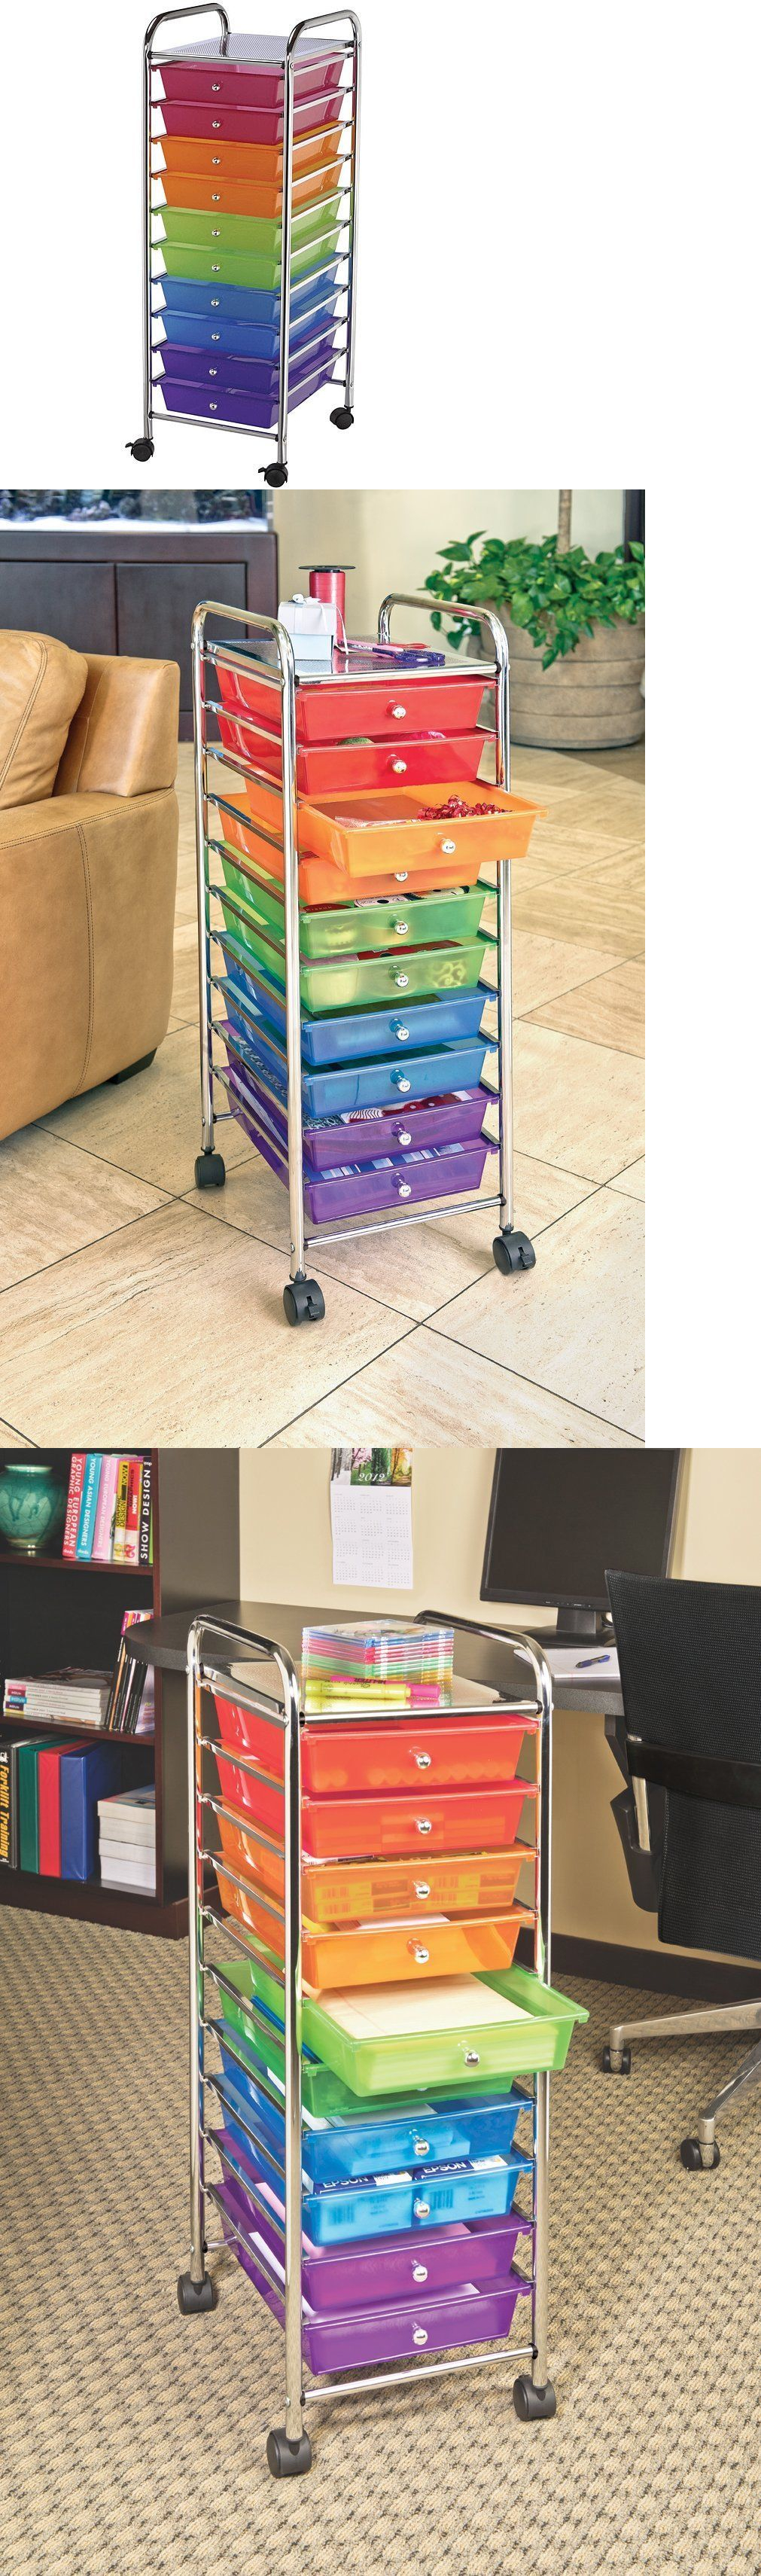 Craft Carts 146400: Craft Storage Cart Art Rolling Organizer With 10  Drawers Furniture Supply Class